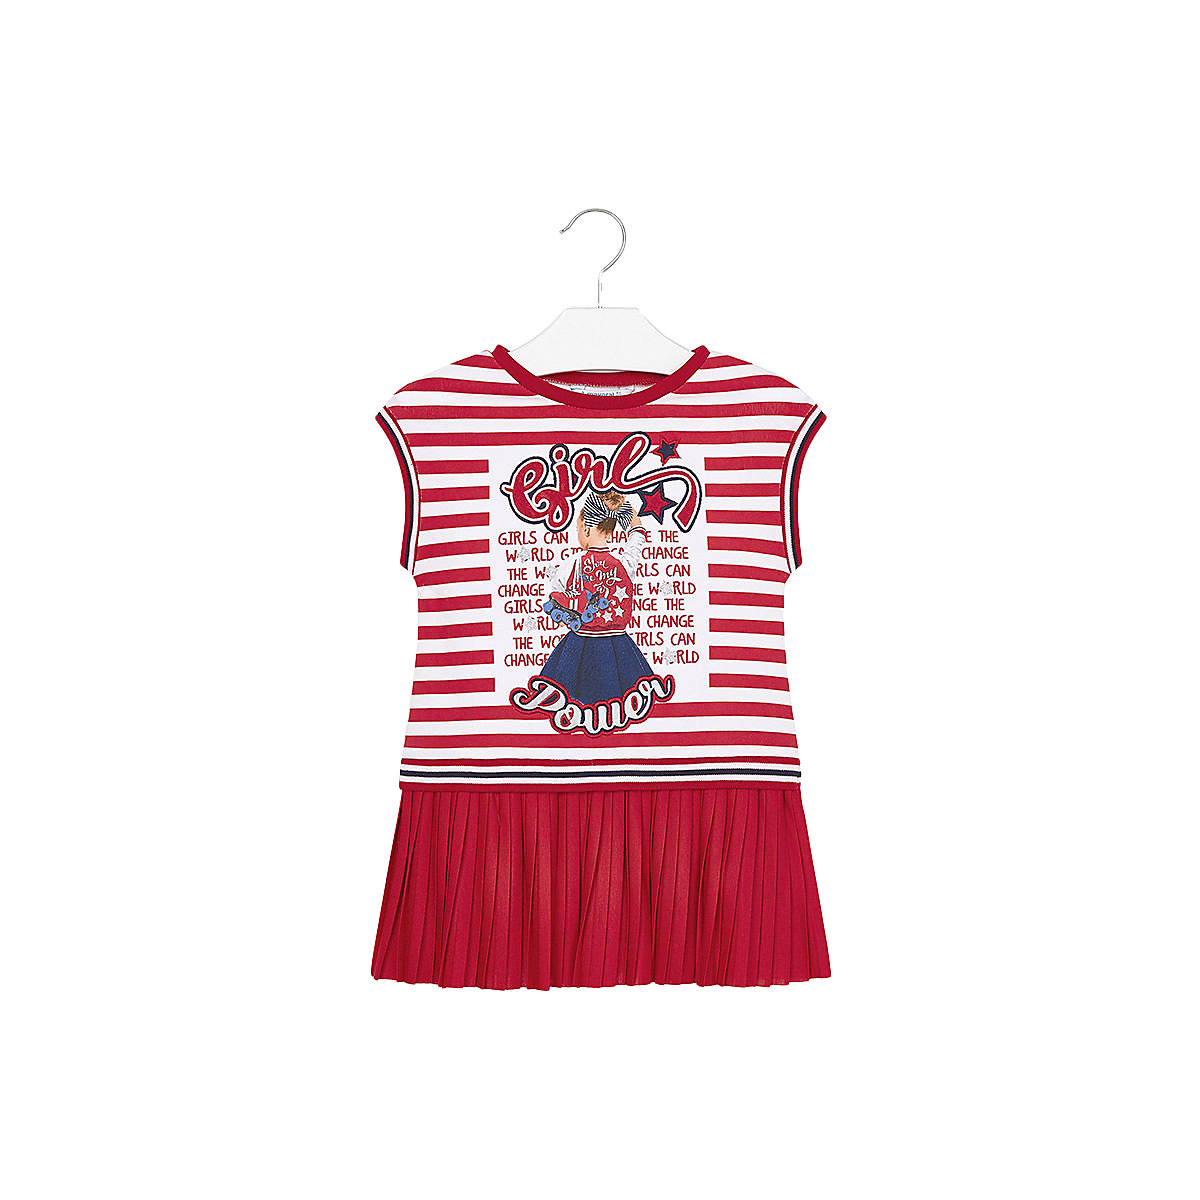 MAYORAL Dresses 10690286 Girl Children fitted pleated skirt Red Polyester Casual Striped Knee-Length Short Sleeve